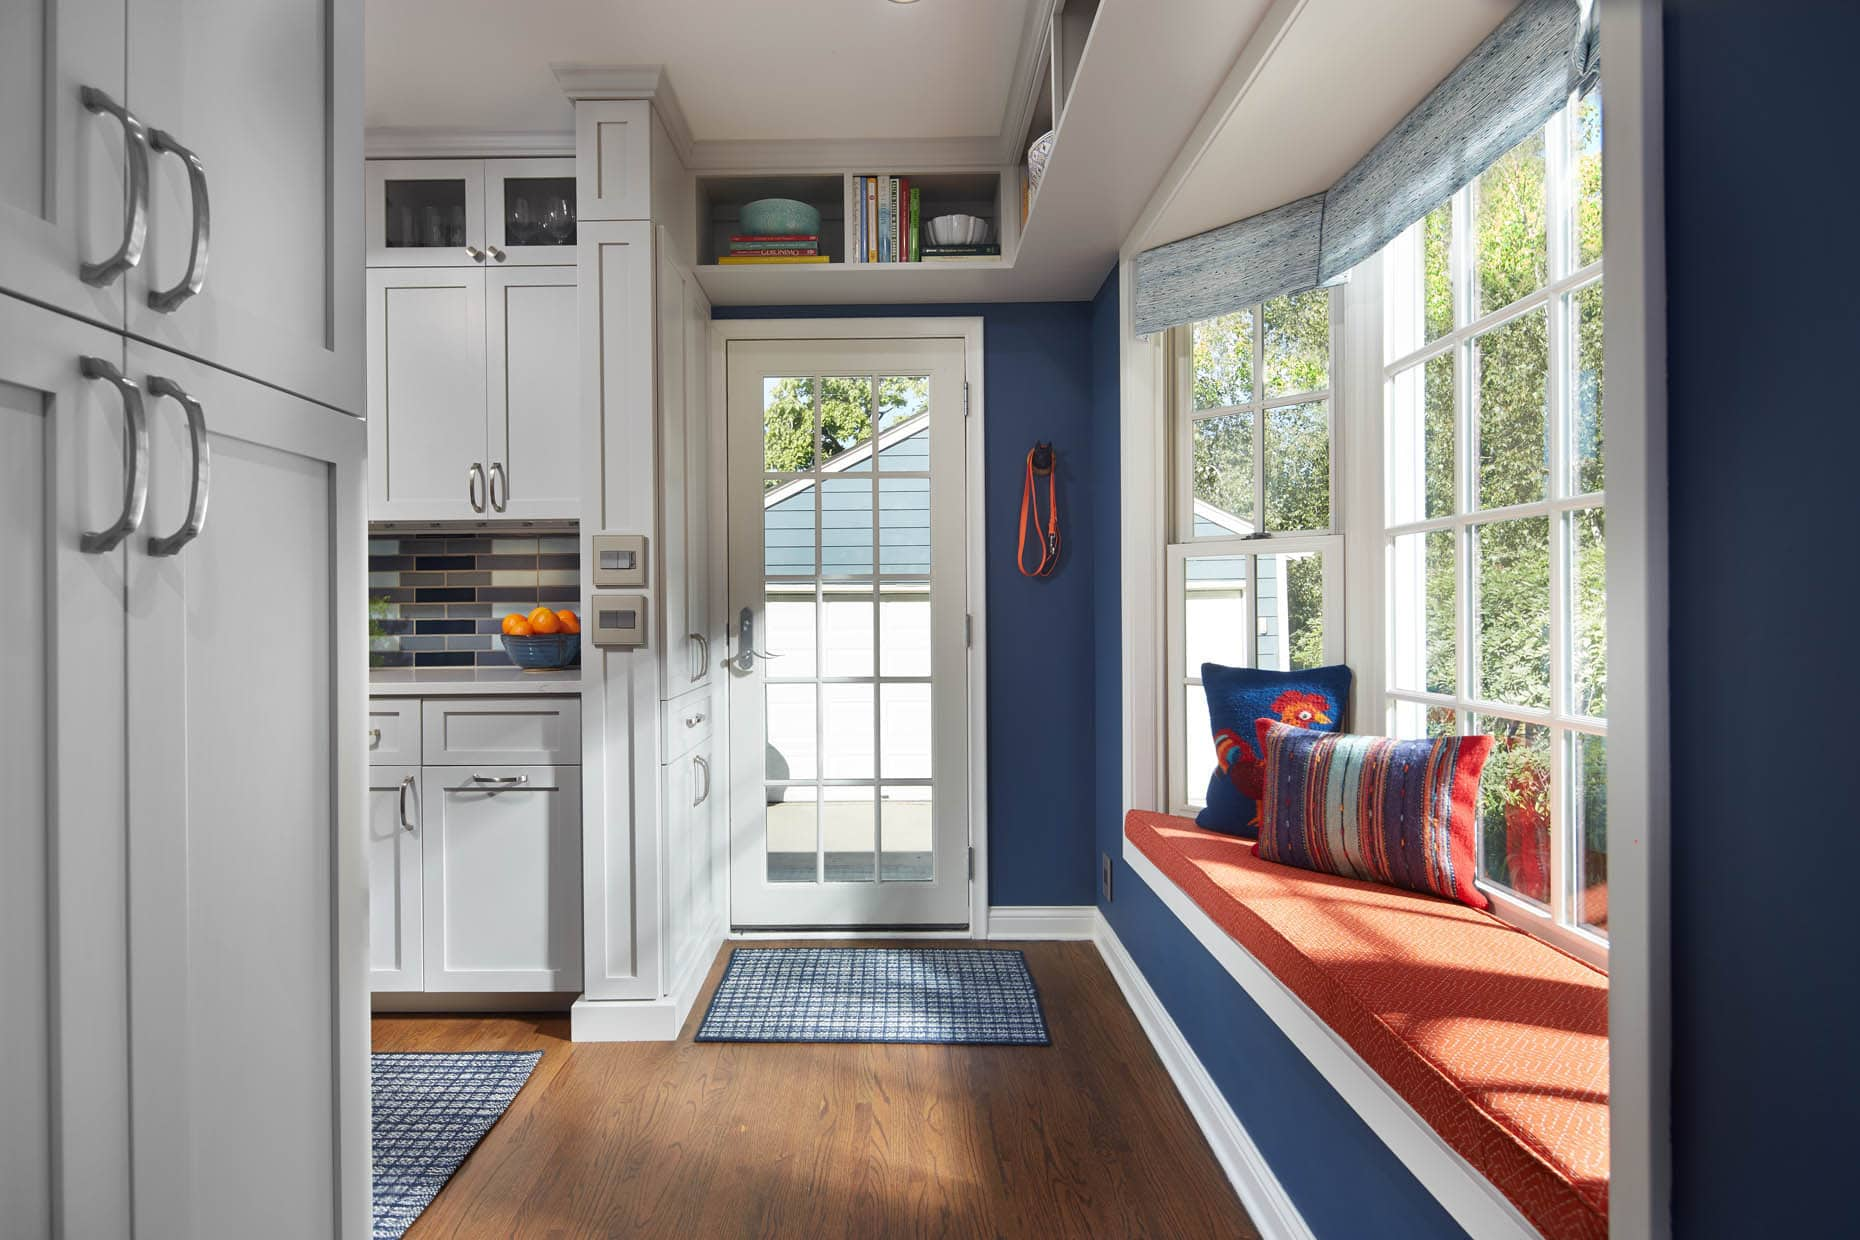 classic-kitchen-window-seat-navy-orange-minneapolis-interior-designer.jpg